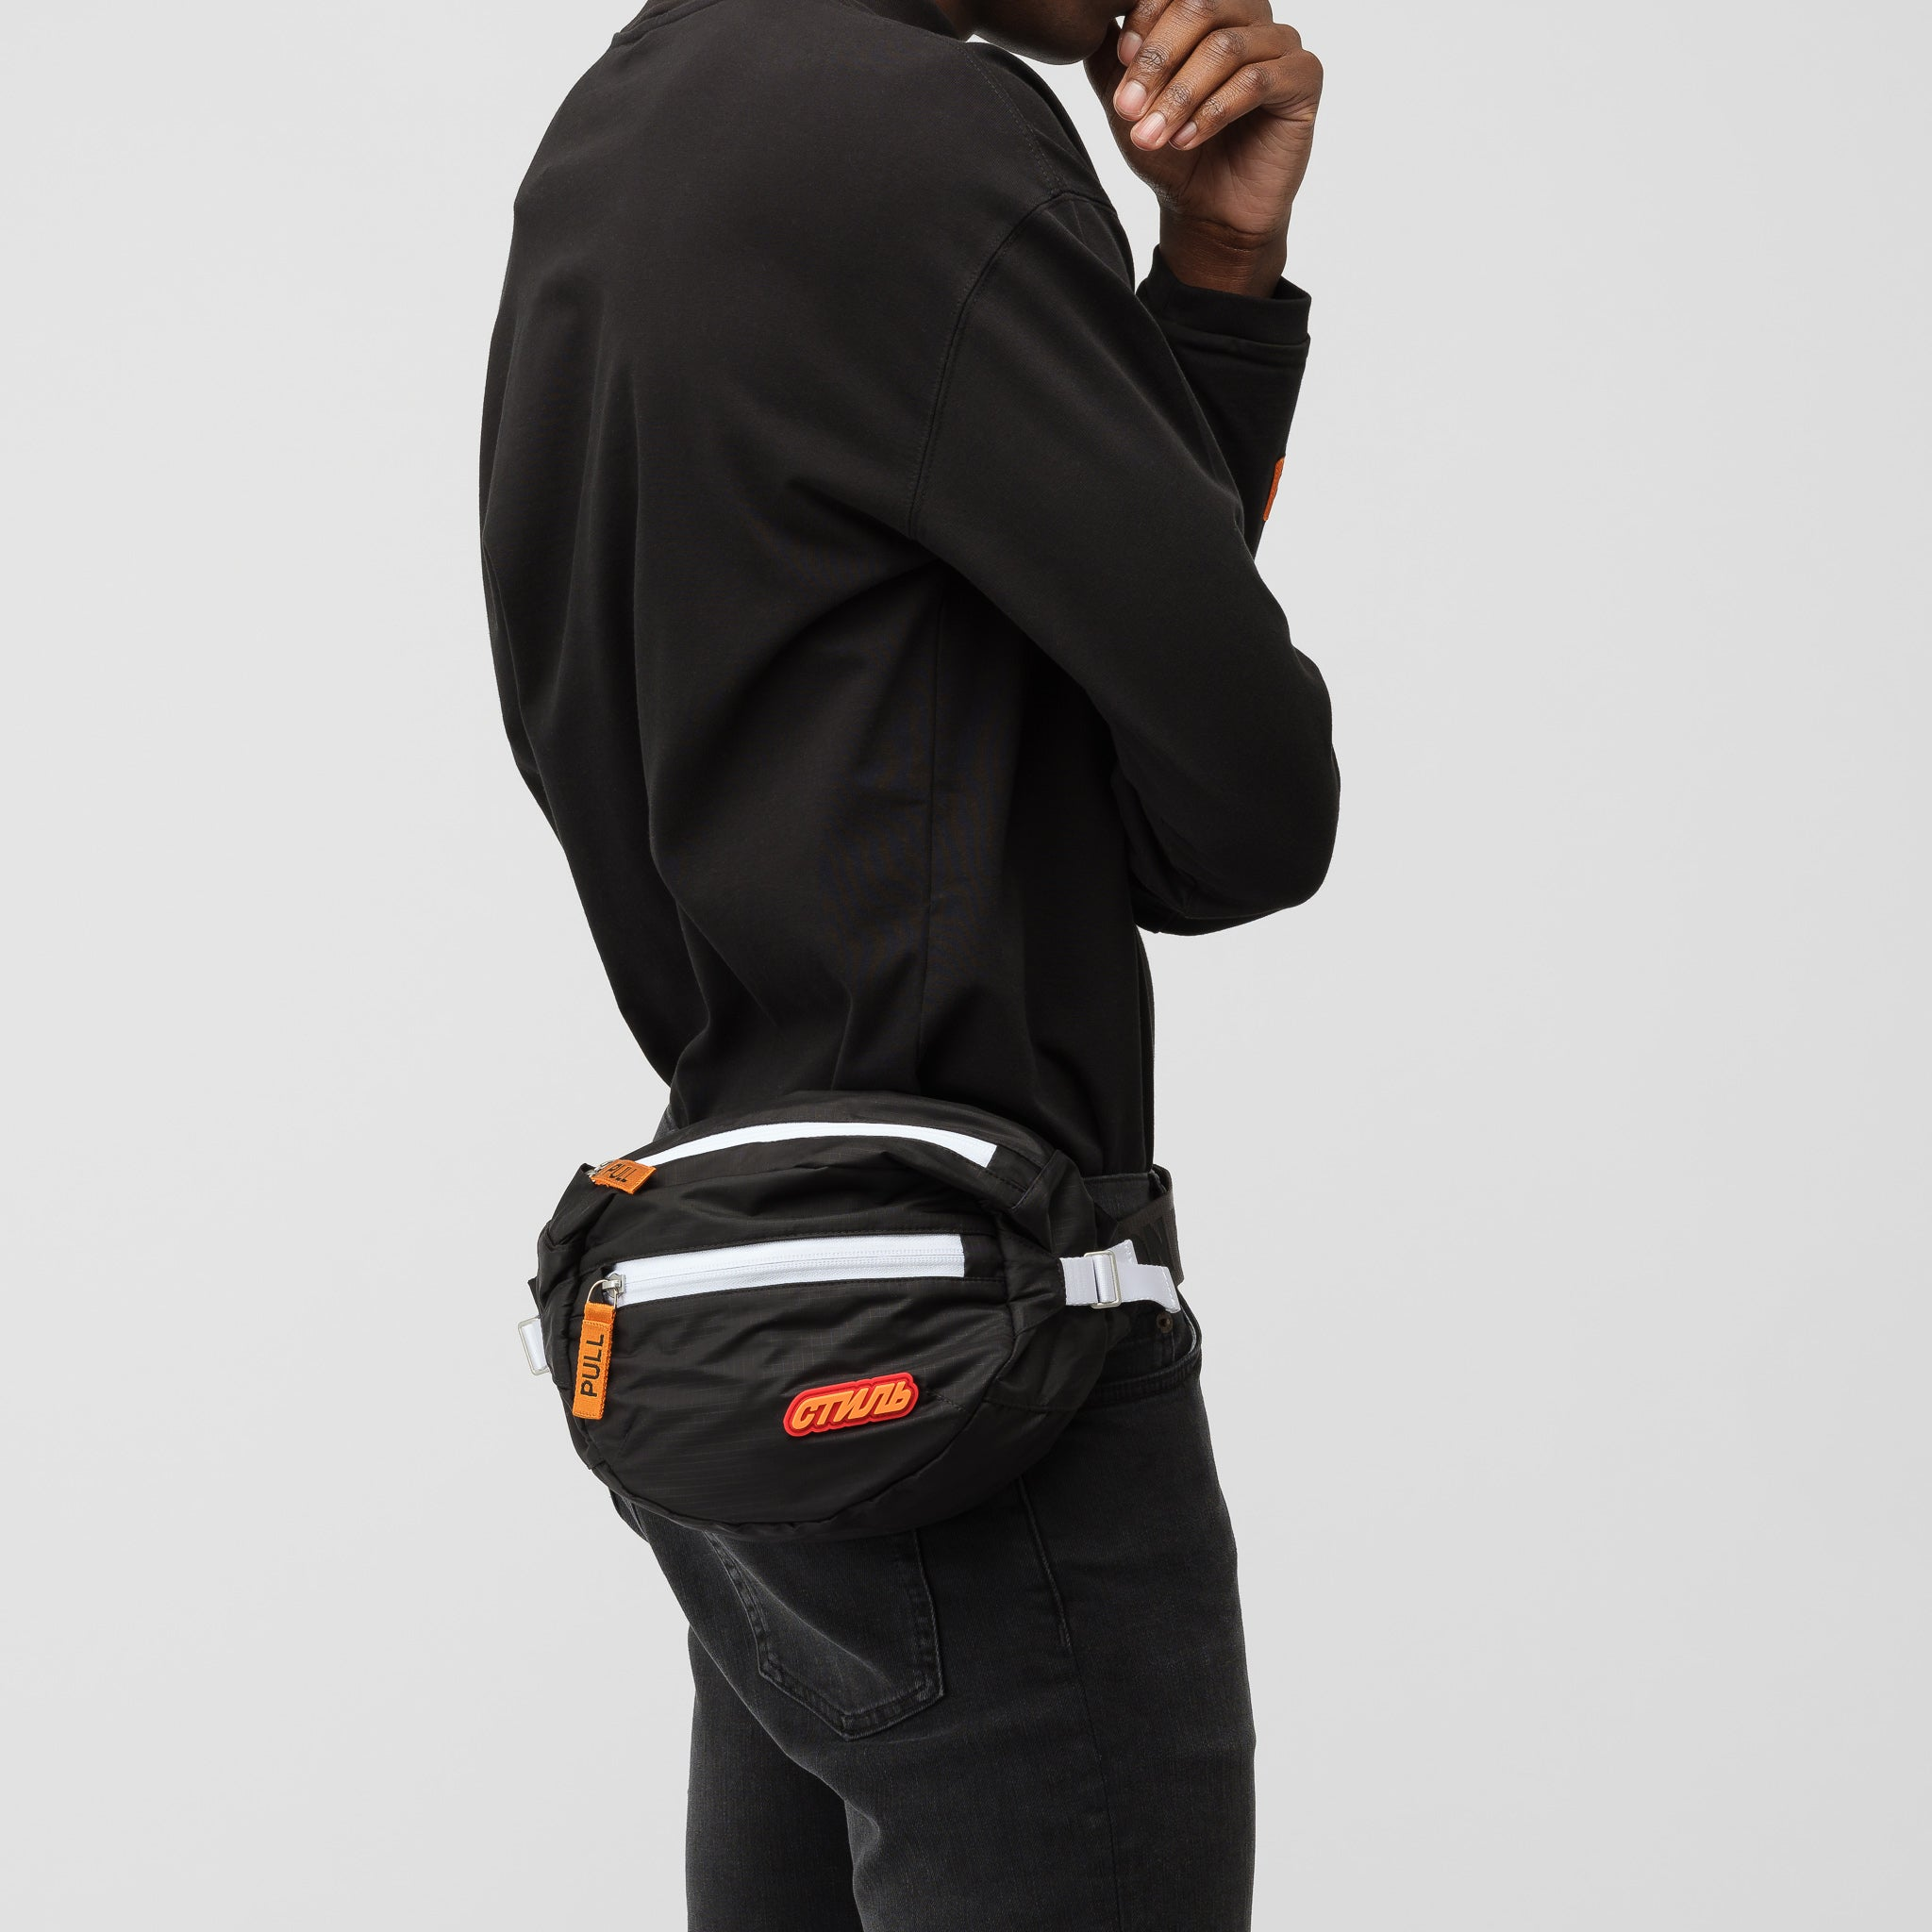 CTNMB Padded Fanny Pack in Black/Orange